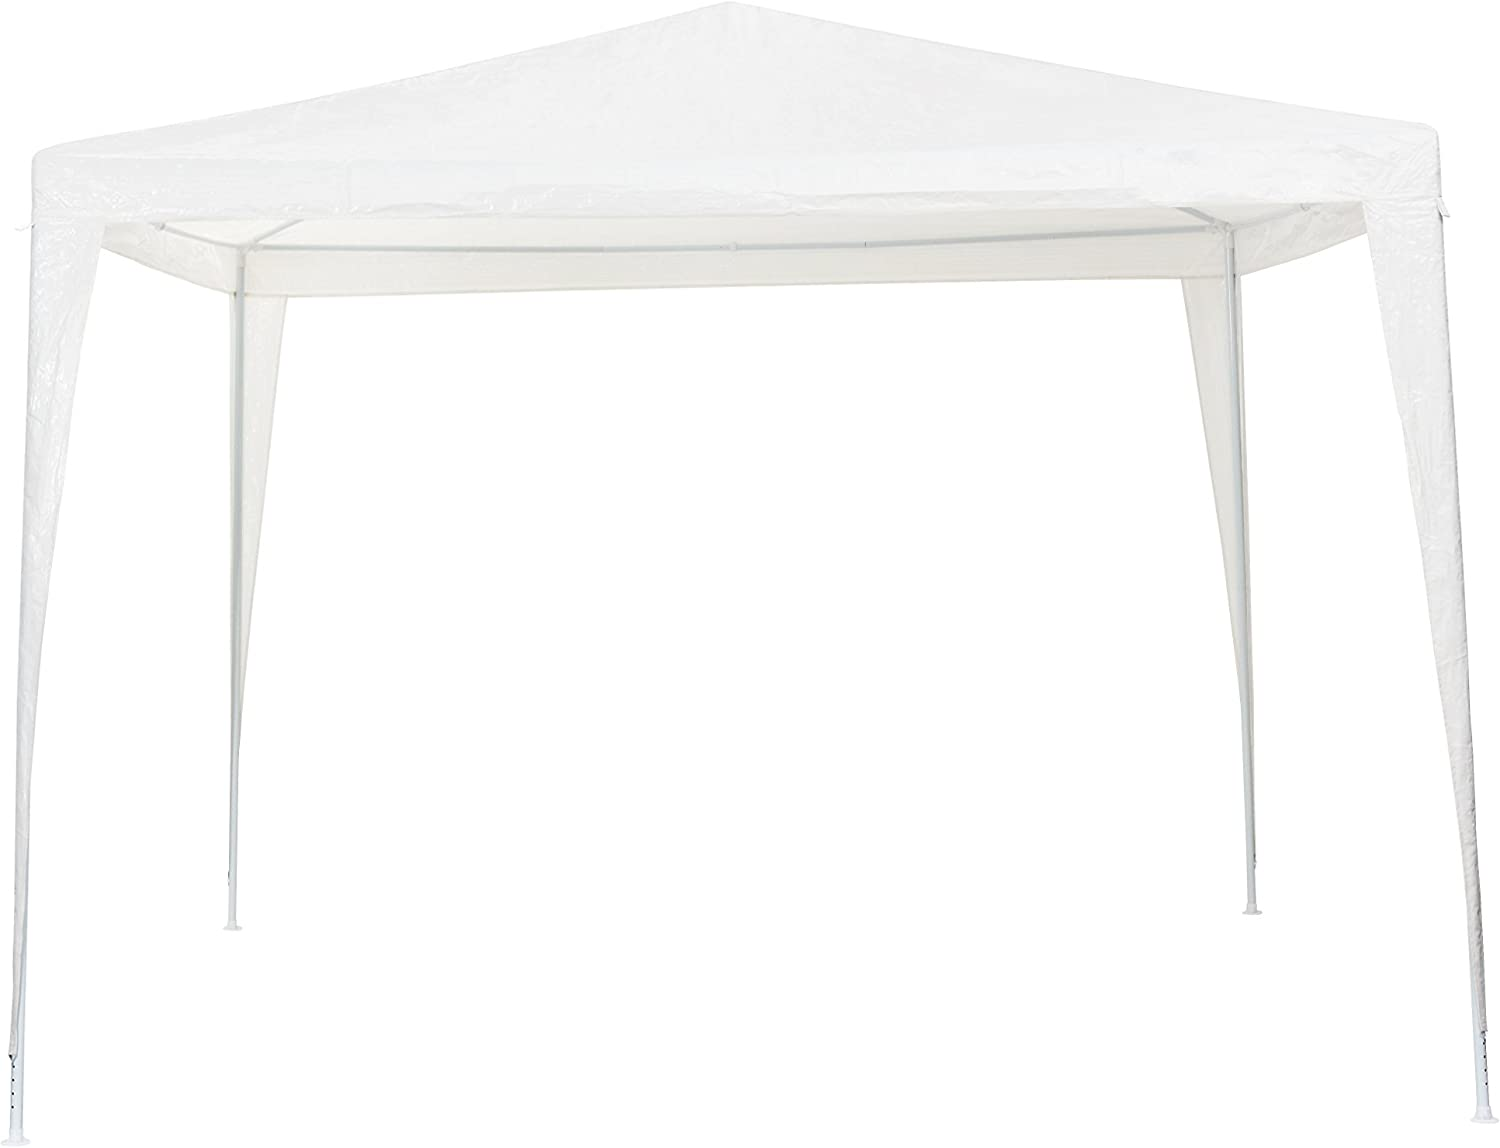 Tepro Pavillon Mana Gazebo, Color Blanco, 290 x 290 x 250 cm ...